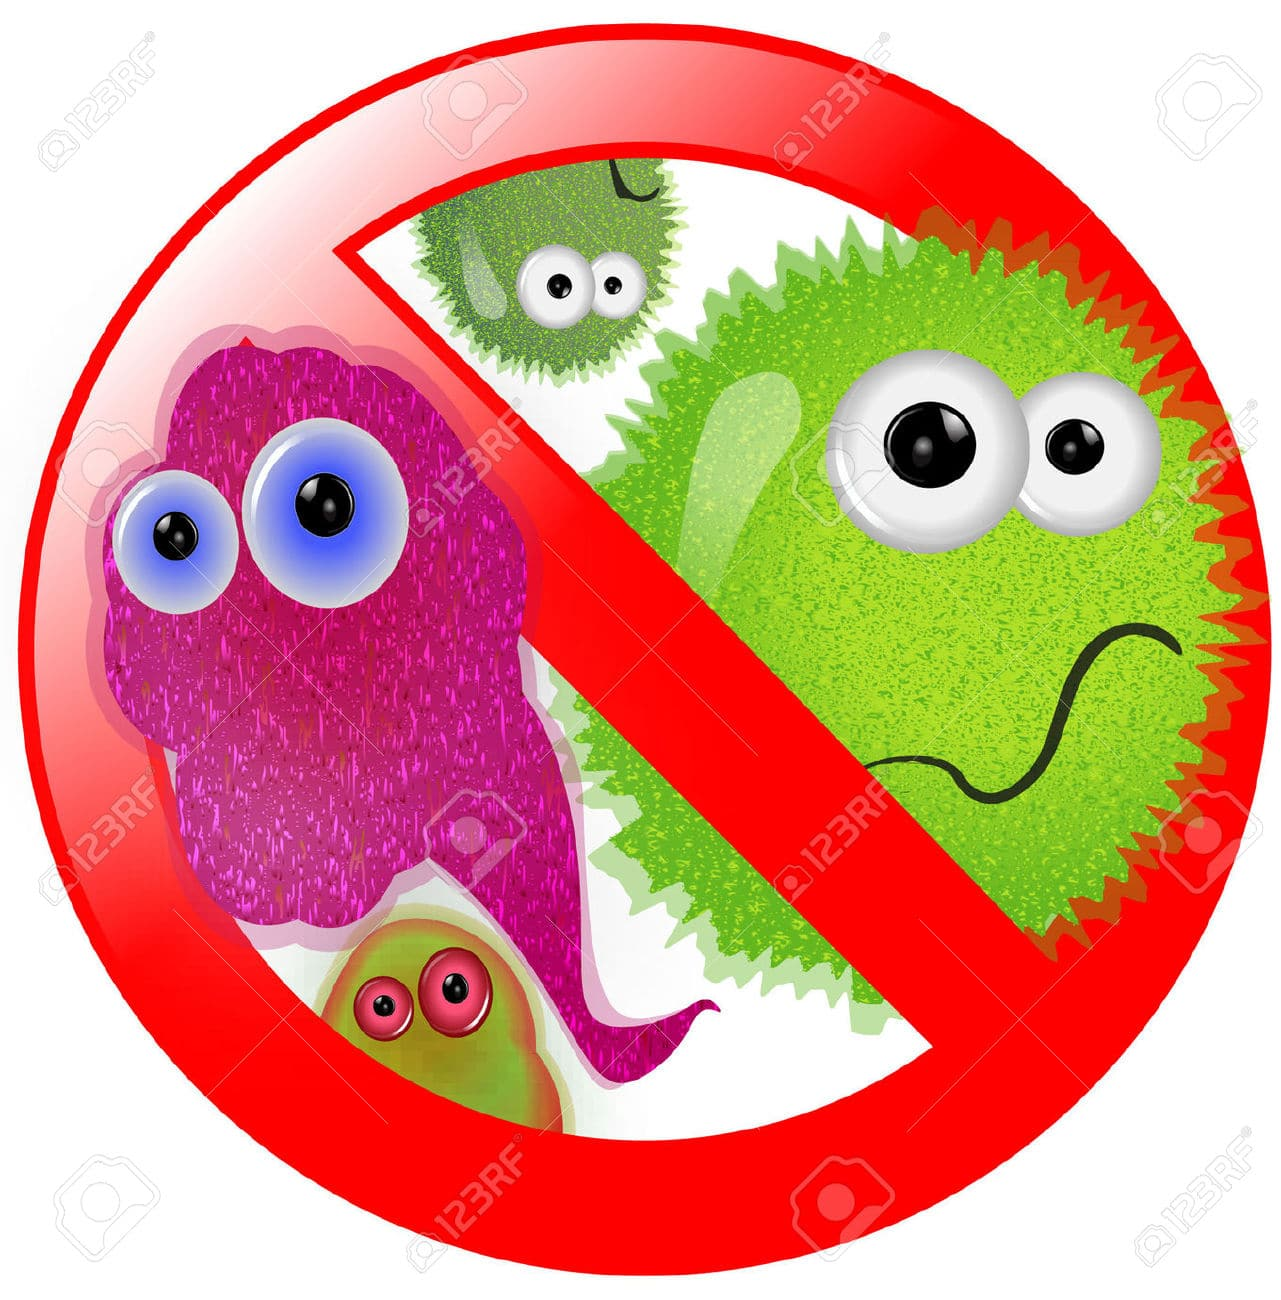 , Cold & Flu Season Prevention – How to help stop the spread of germs